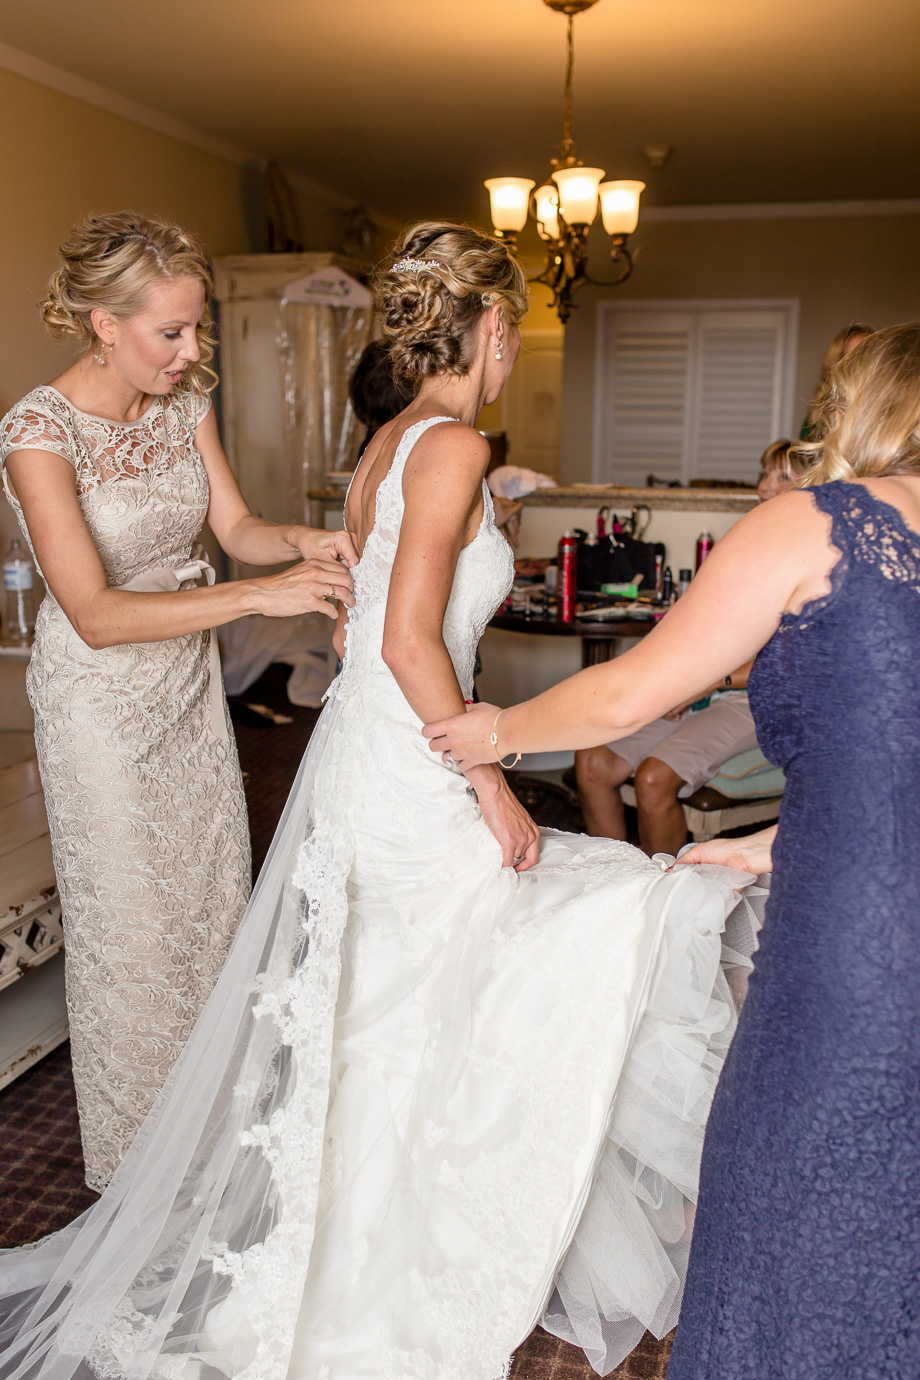 Bride getting into her dress at the Oceano Hotel and Spa